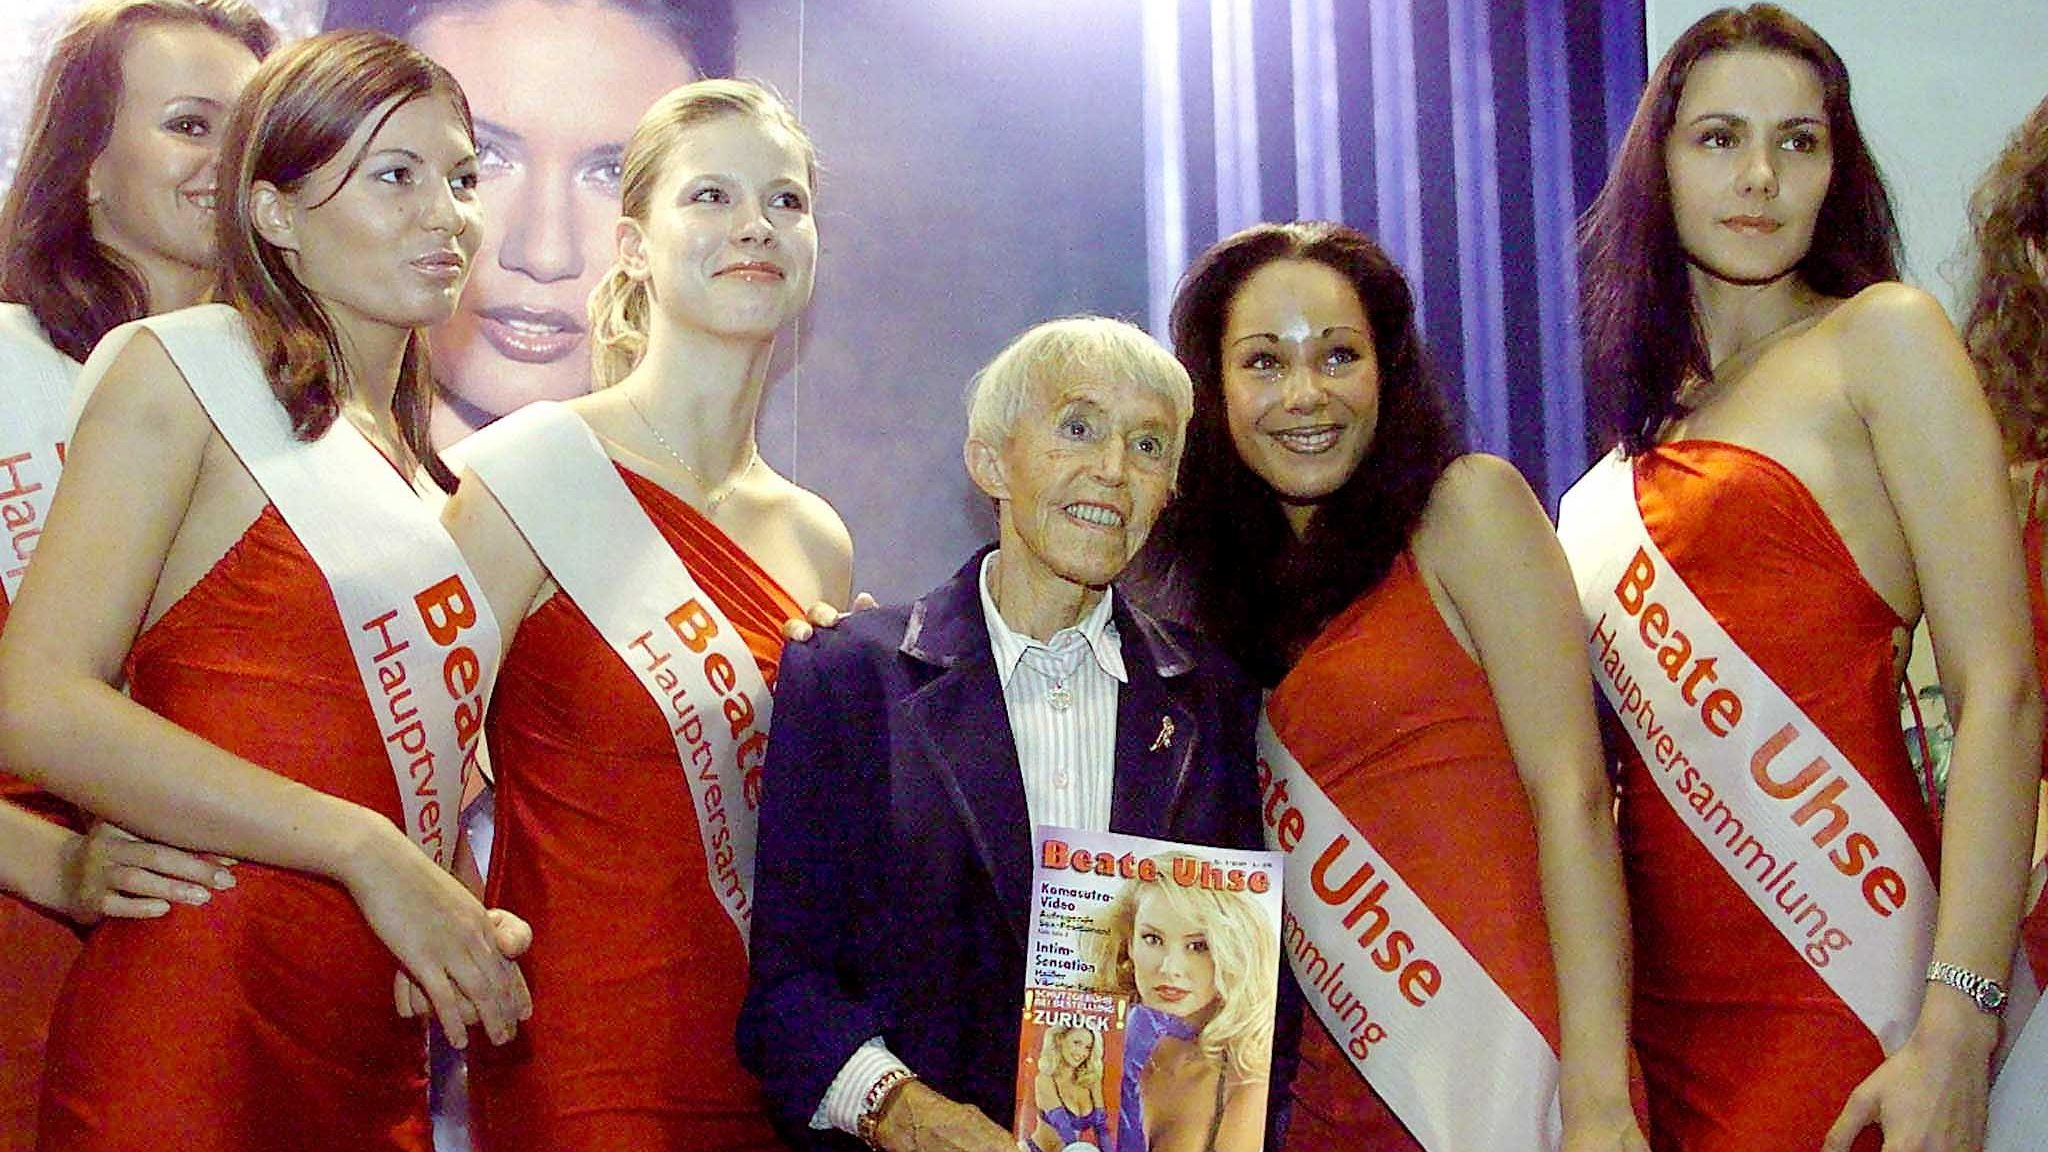 Beate Rotermund, 80-year-old head of international erotic company Beate Uhse AG, poses with models prior to the company's first shareholder meeting in the northern German city of Flensburg August 4, 2000. The company went public in 1999.